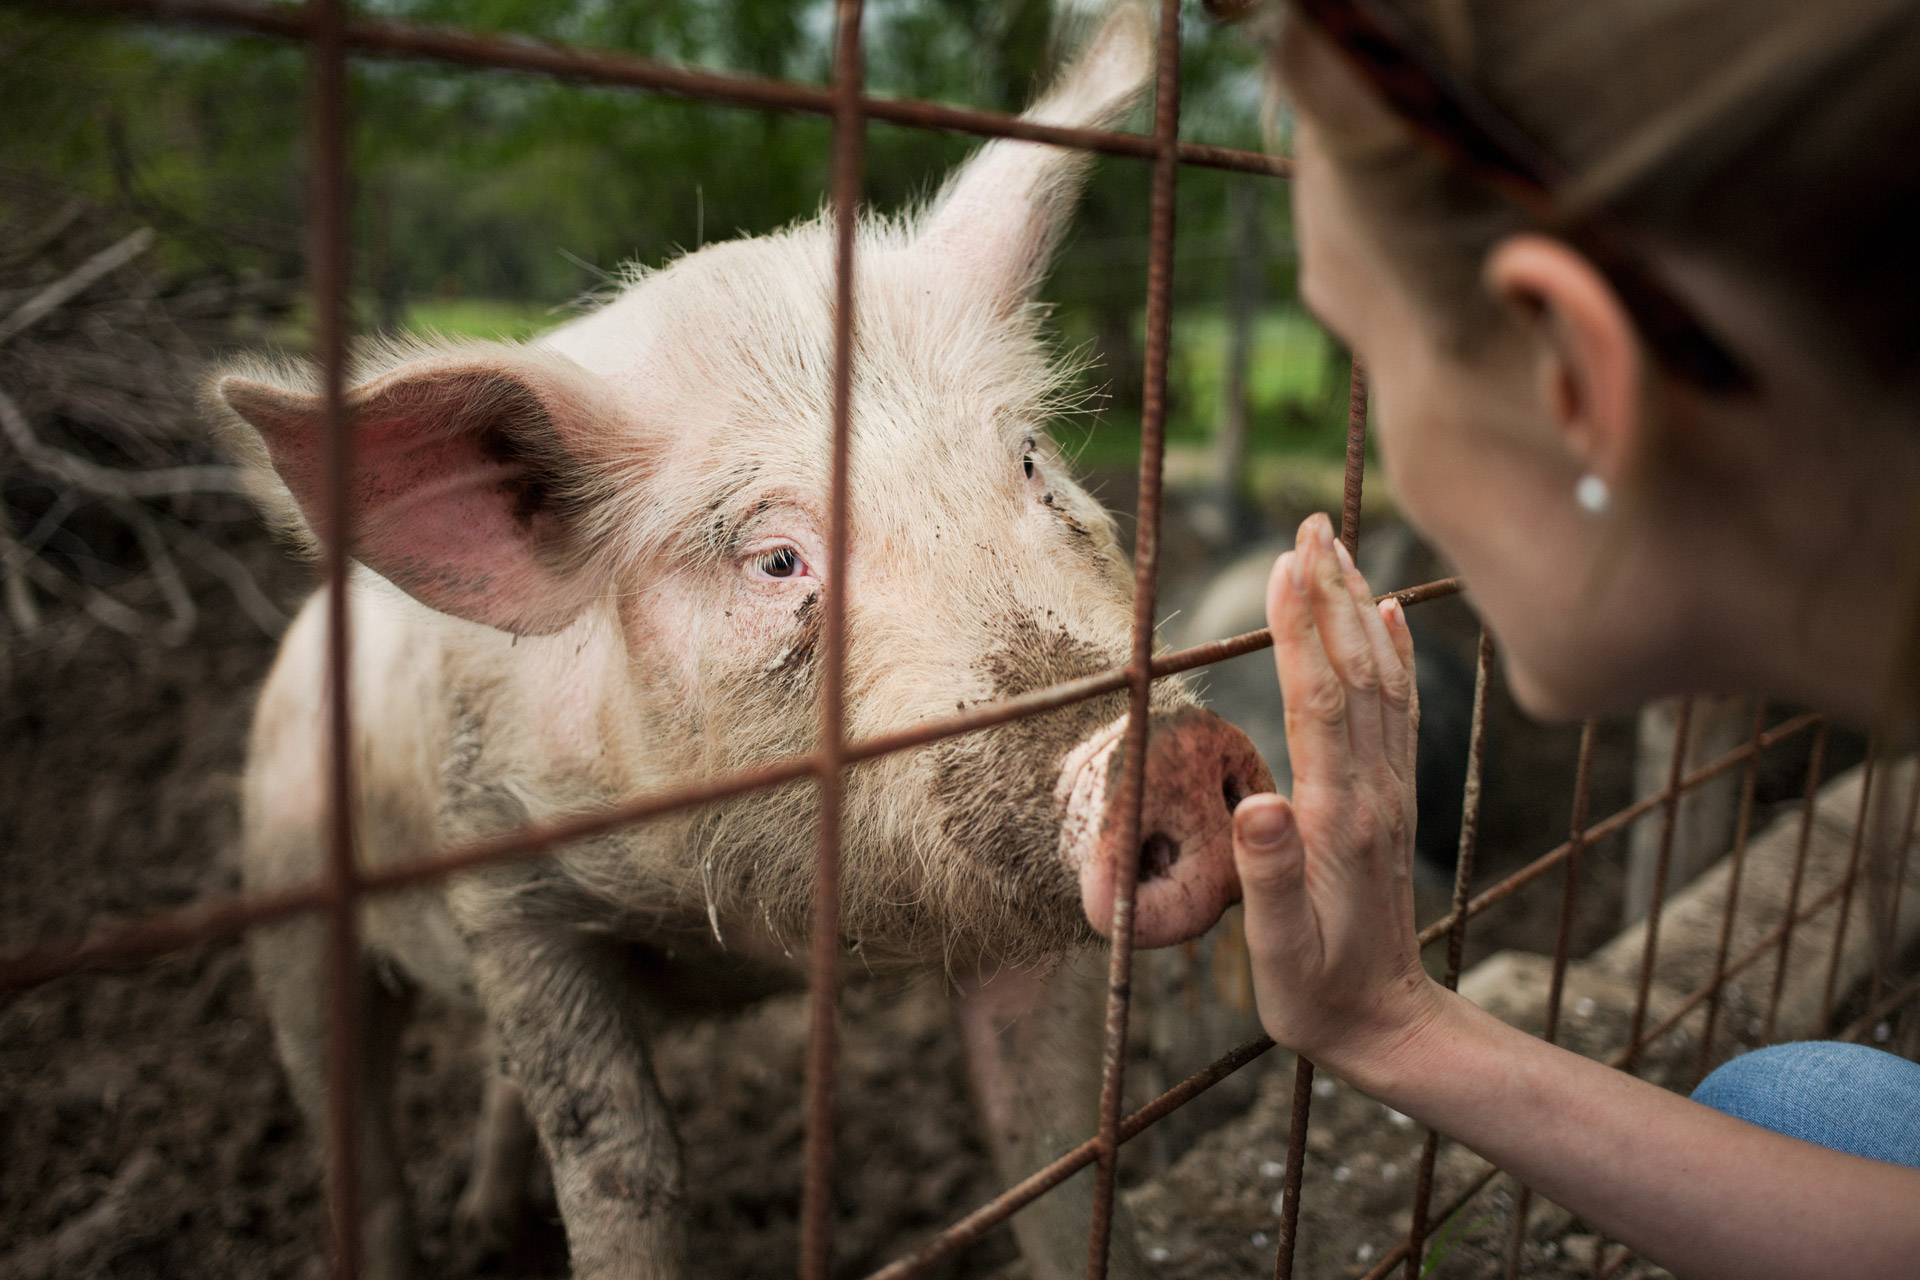 timo-stammberger-photography-fotografie-pig-cute-schwein-woman-erdlingshof-mitgefuehl-interaction-compassion